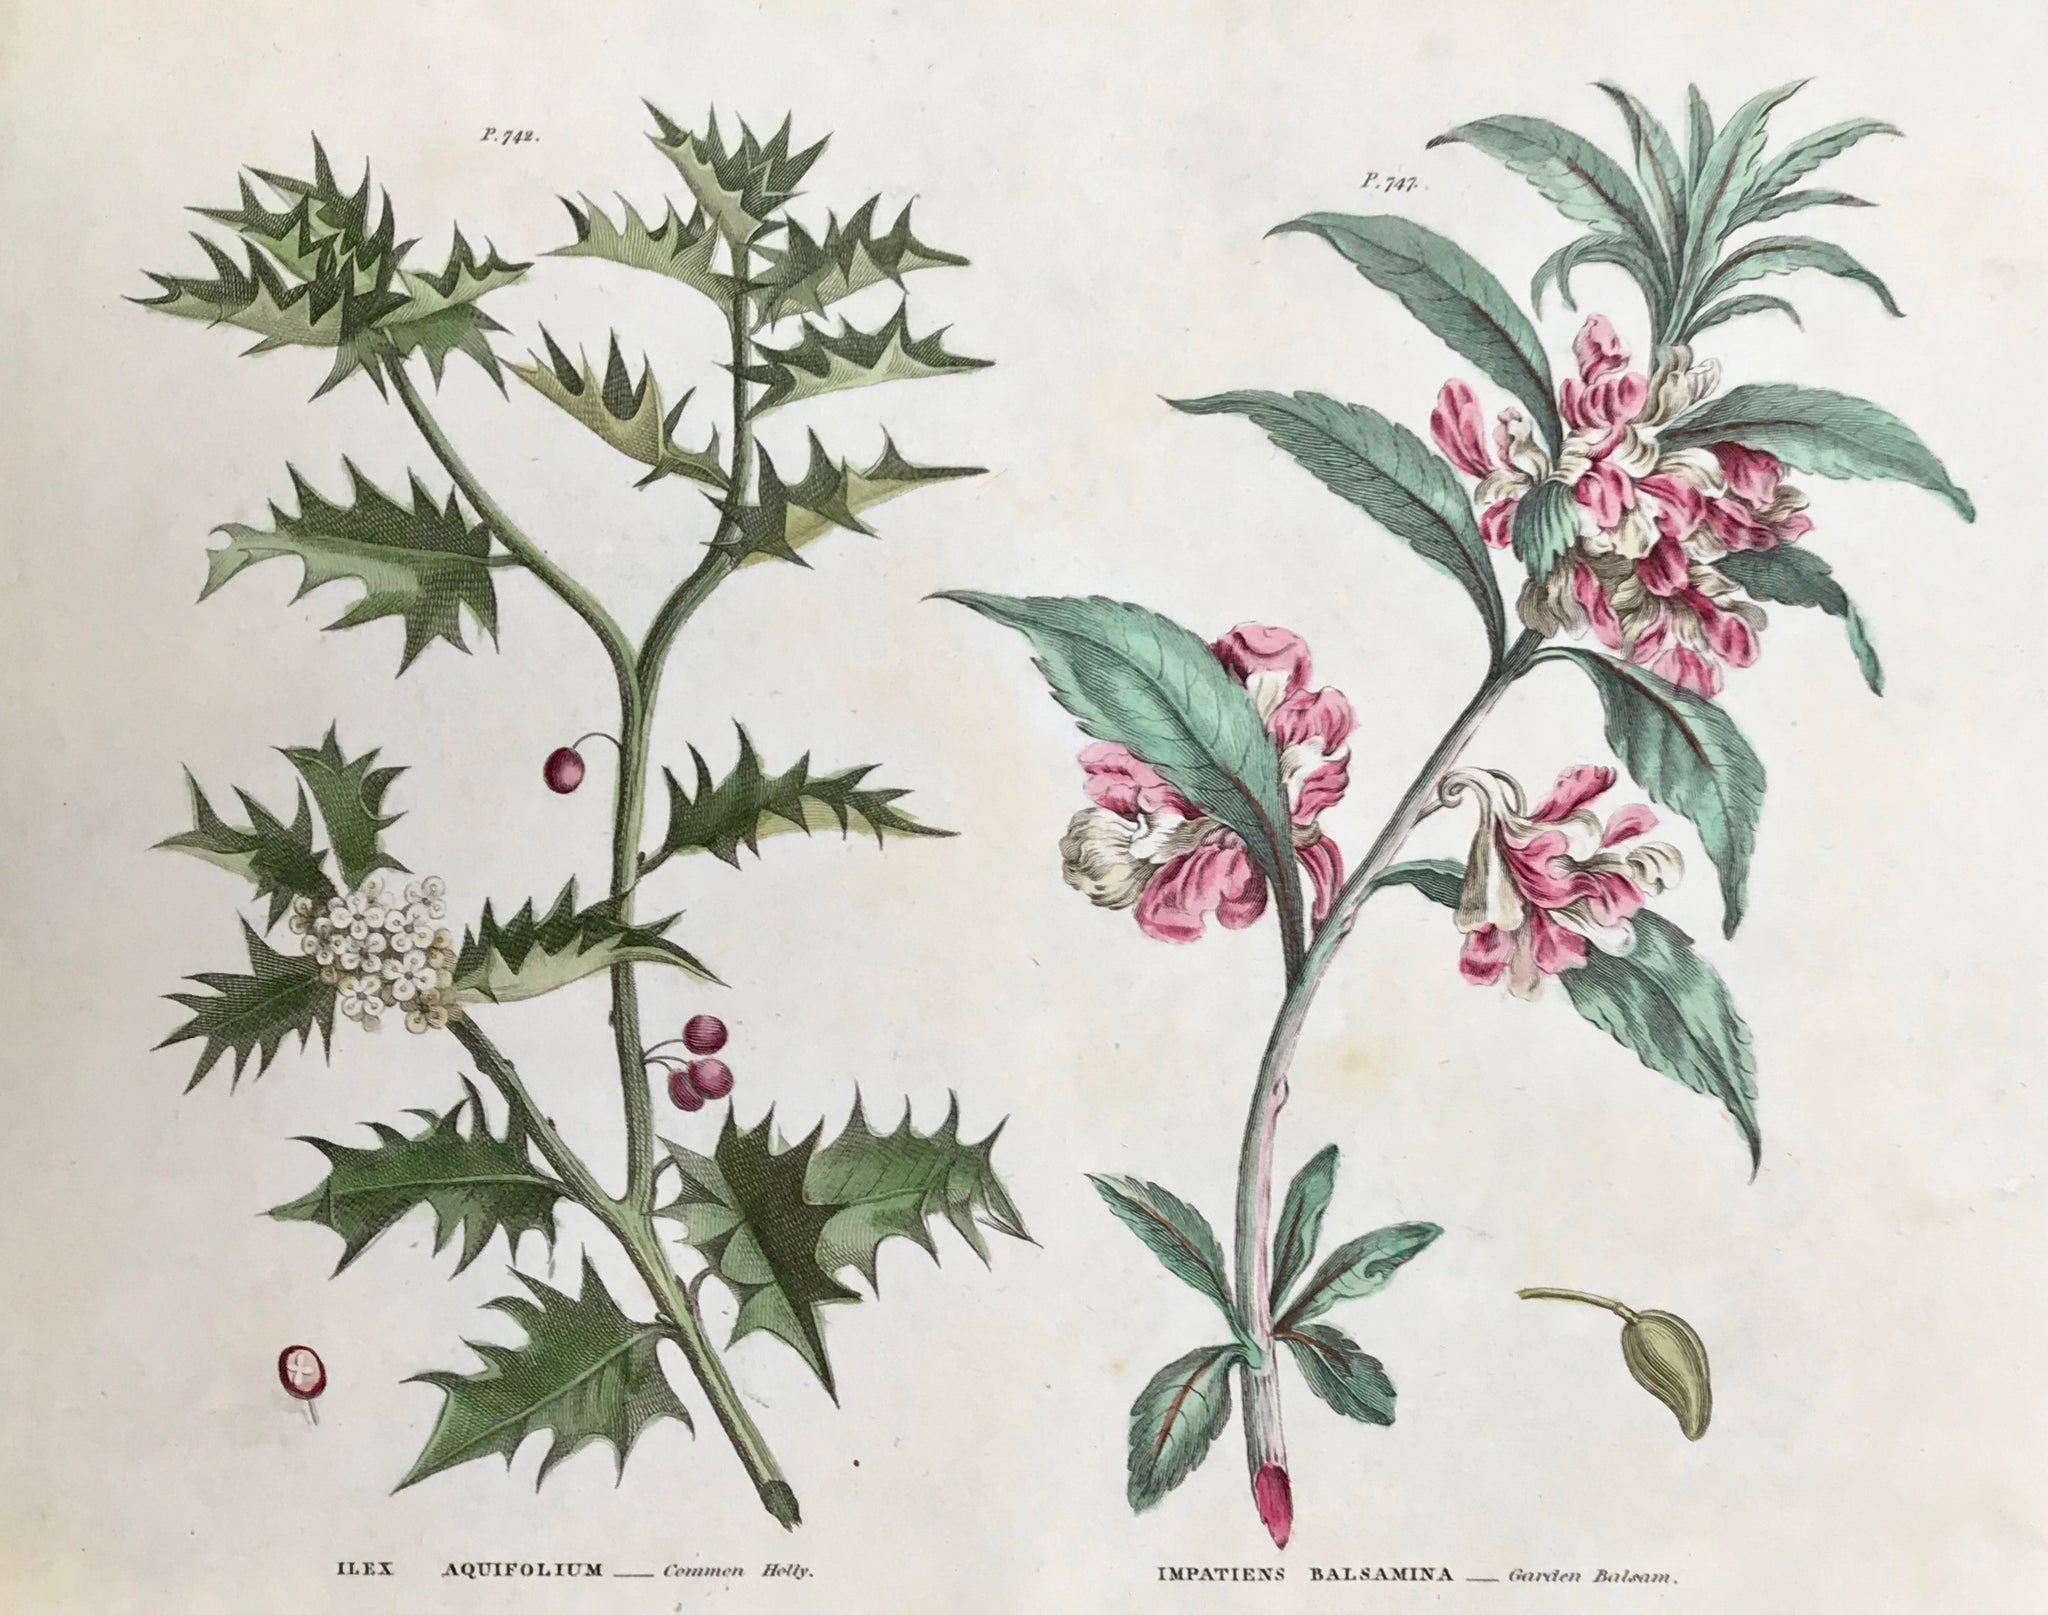 "Ilex Aquifolium Common Holly Impatiens Balsamina Garden Balsam  Antique Botanical Prints from ""The Universal Herbal"" by Thomas Green.  The complete title of this accurately and absolutely delightfully hand-colored work is: ""The Universal Herbal"", or Botanical, Medical, and Agricultural Dictionary, containing an Account of all the known Plants in the World arranged according to the Linnean System,"